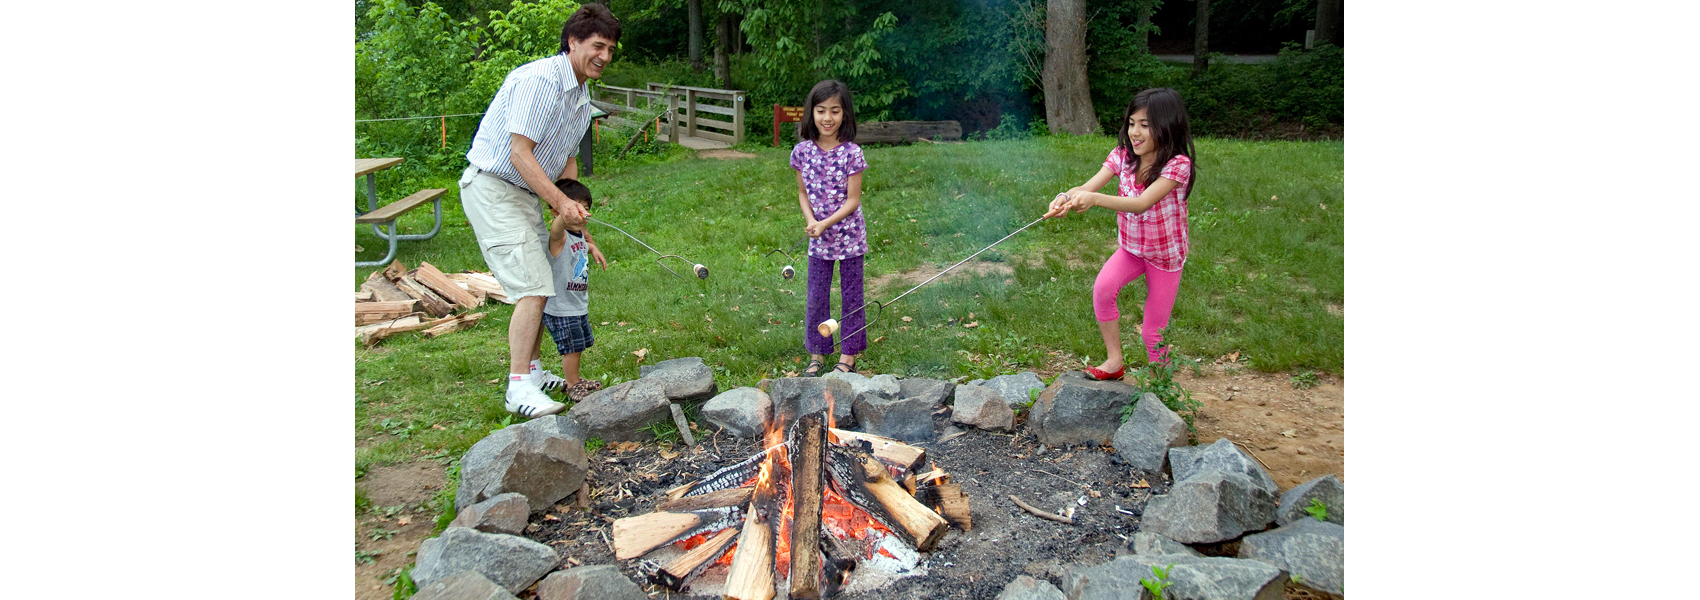 A family cooks a meal on sticks over a campfire